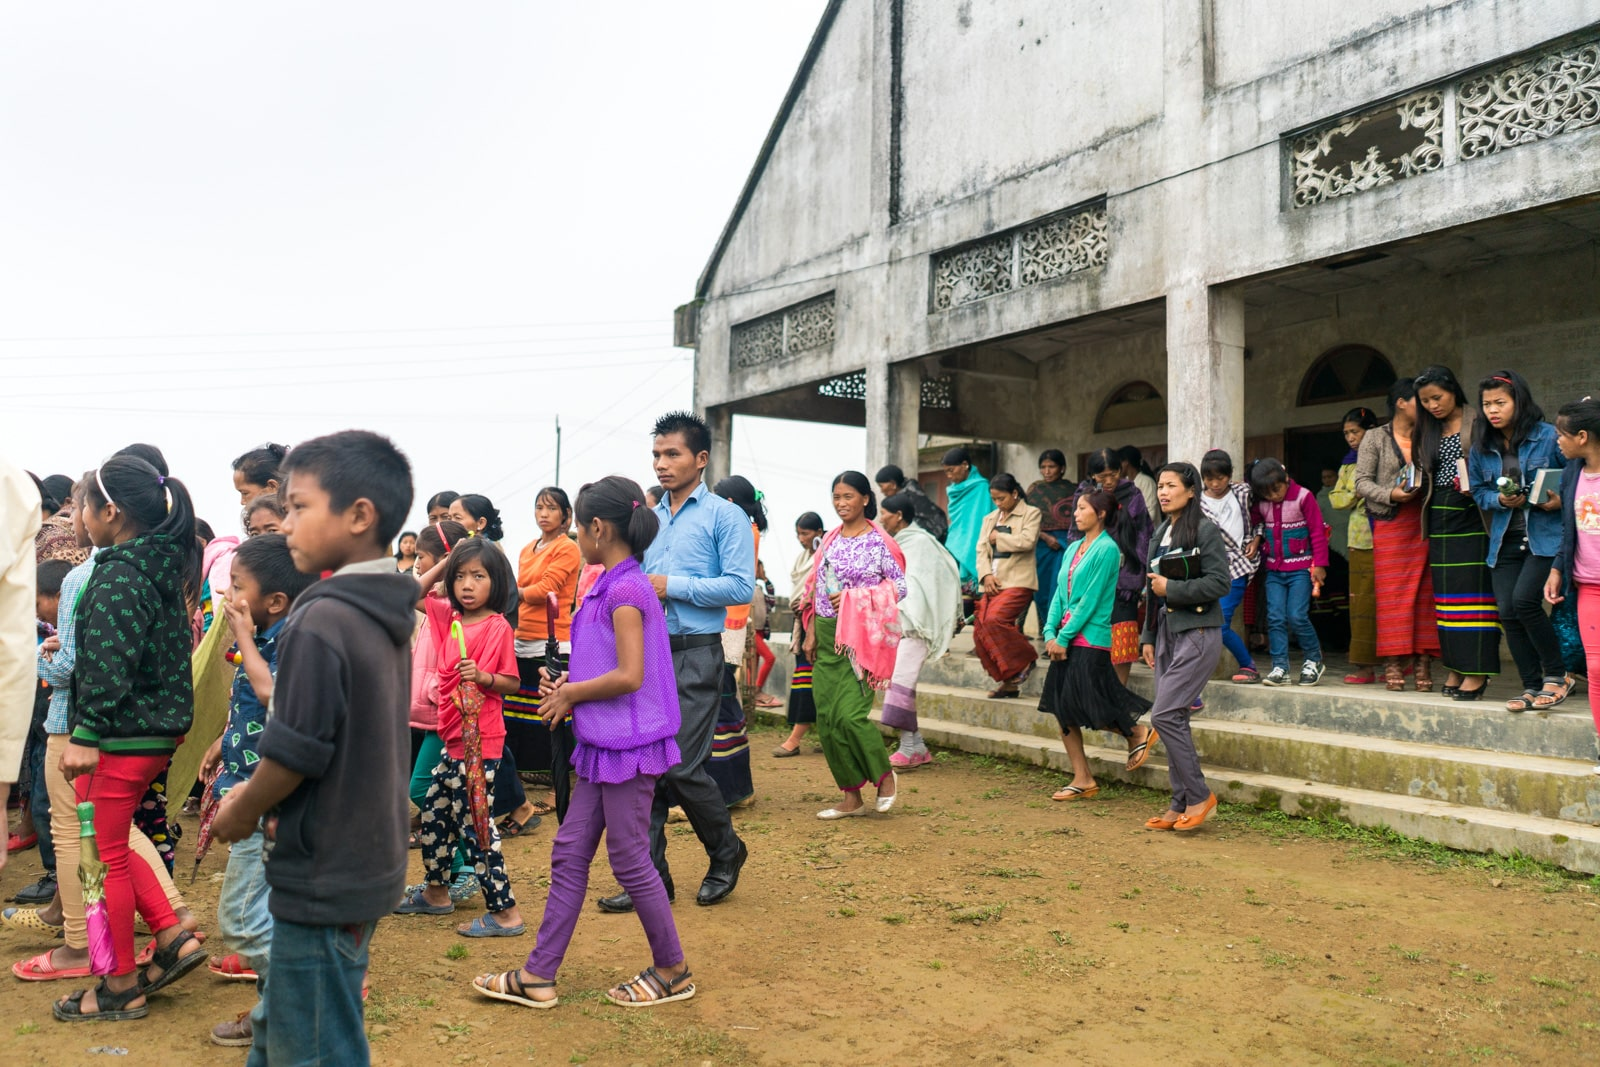 Opium, Christianity, and headhunters in Longwa village, Nagaland - People leaving church on Sunday morning - Lost With Purpose